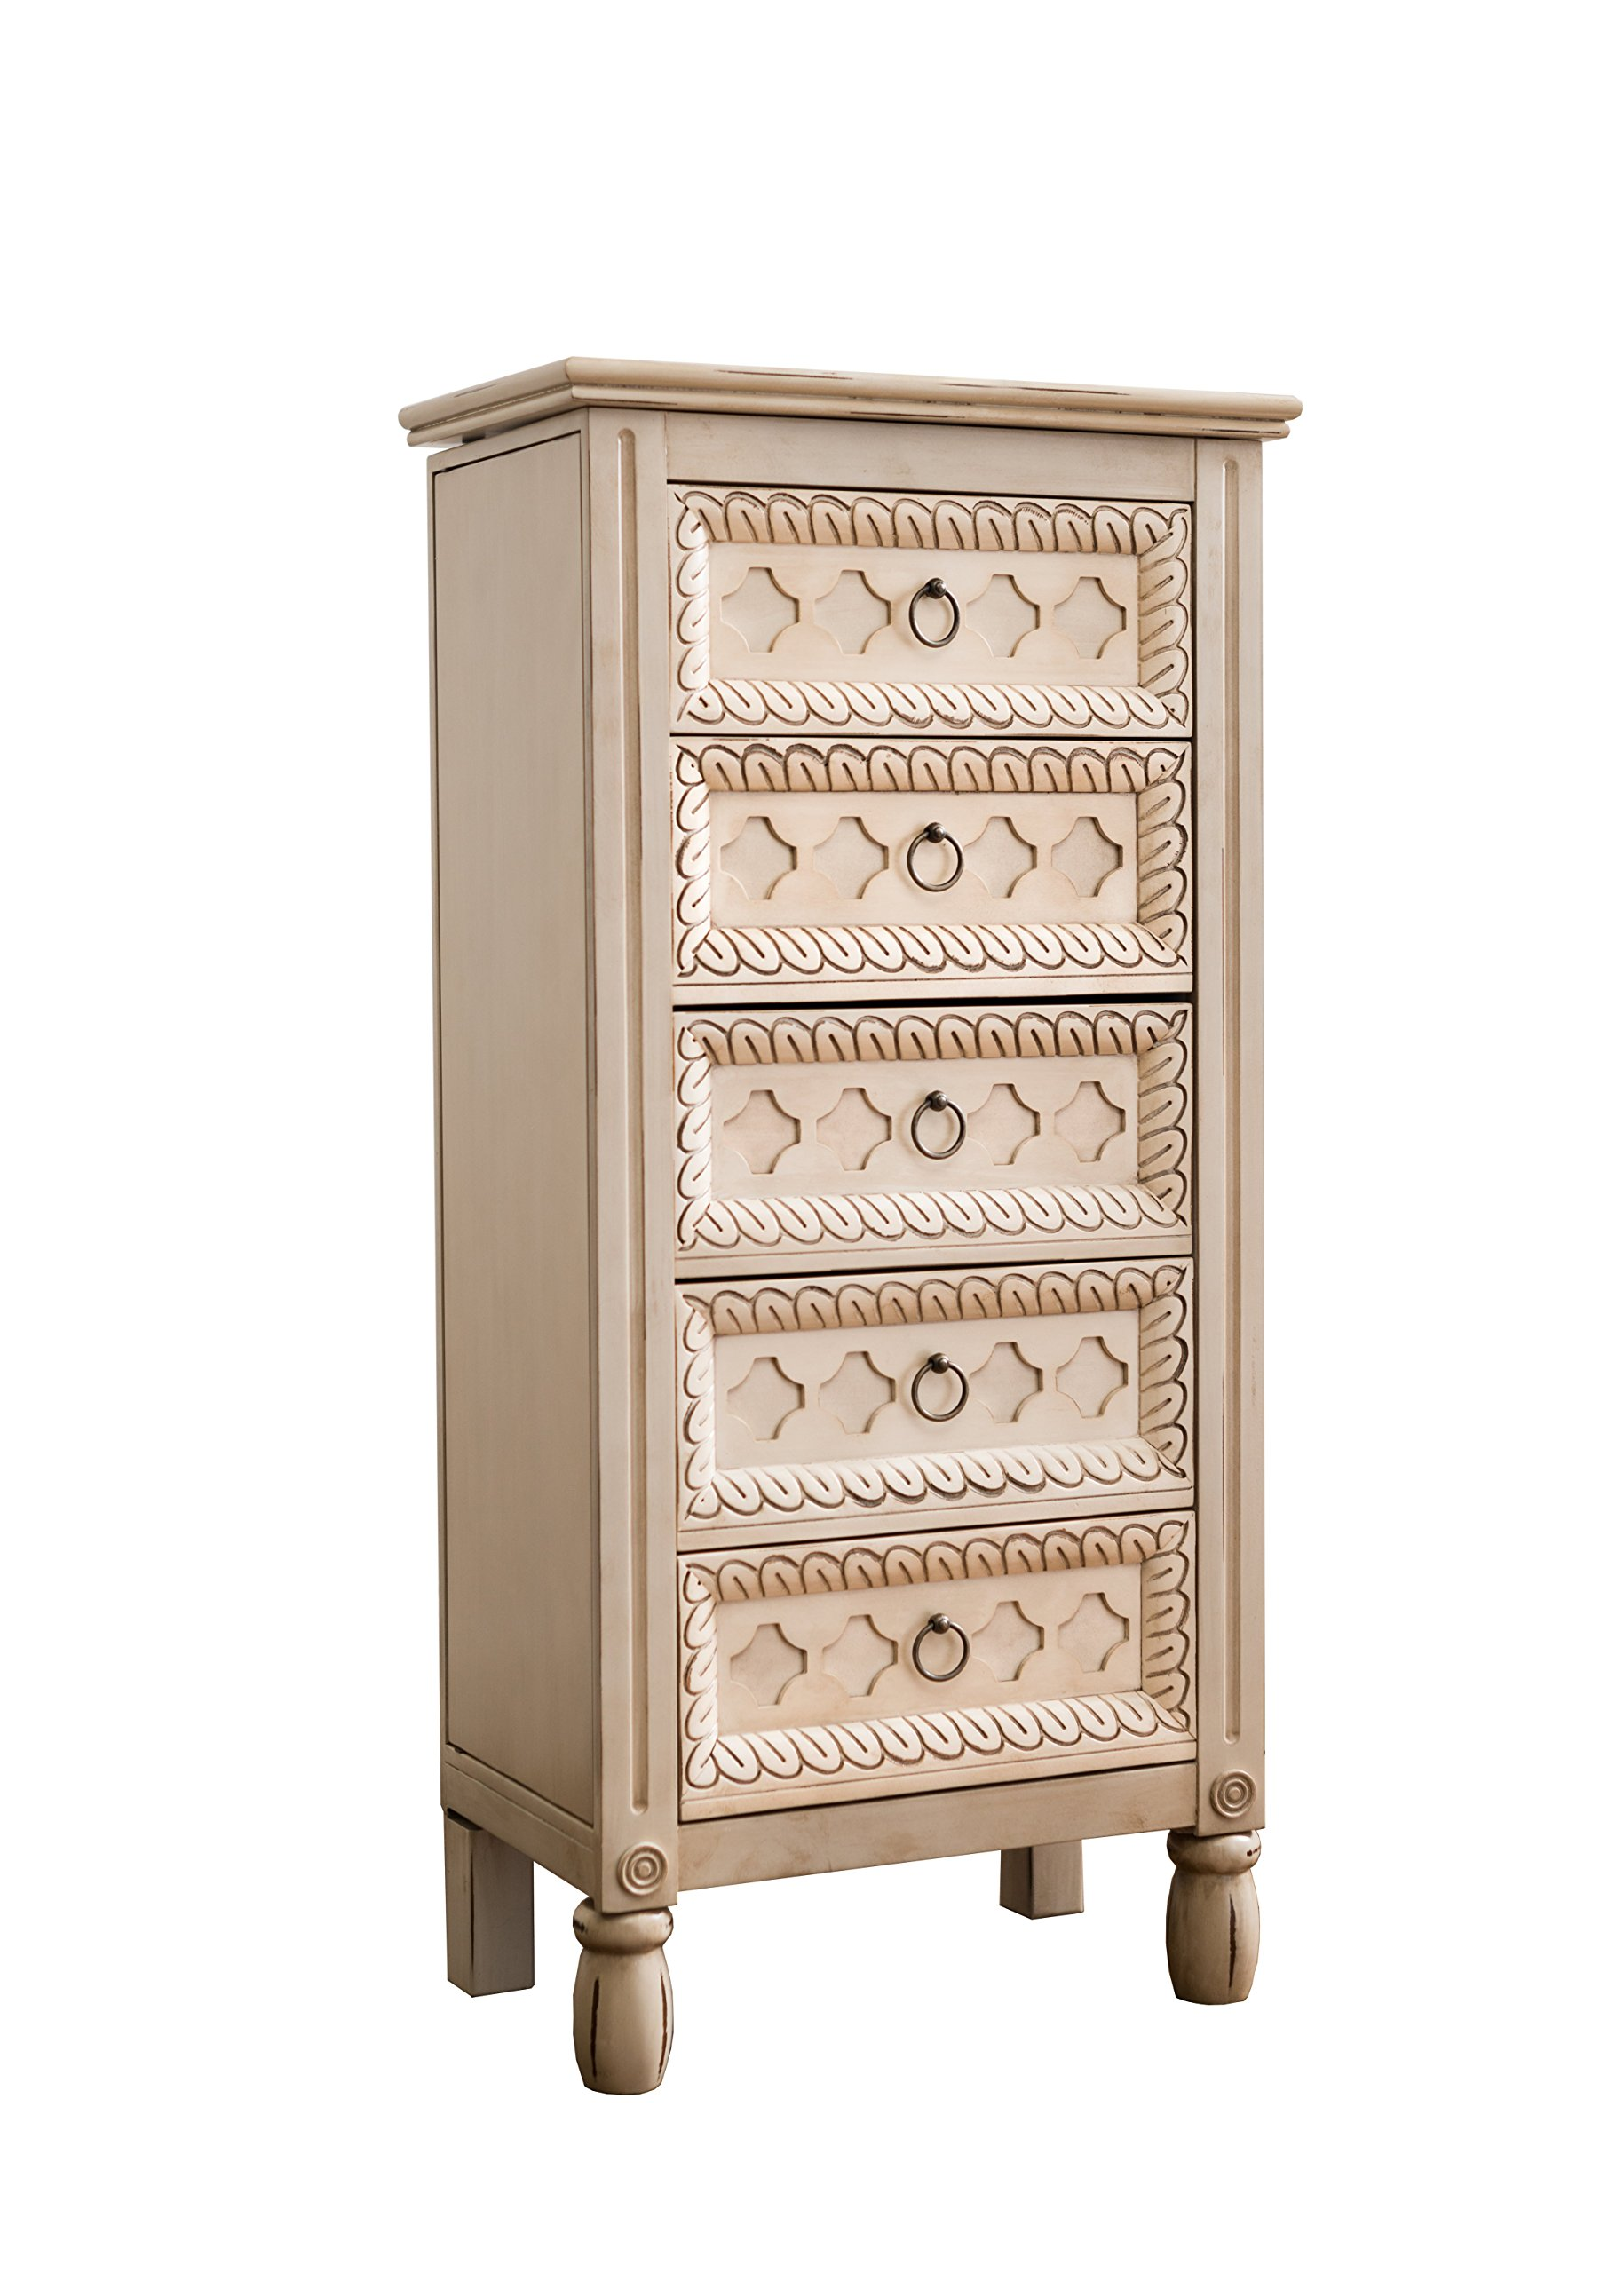 Hives and Honey 1004-061 Abby Jewelry Armoire, 40.25in X 19.5in X 11.75in, Antique Ivory